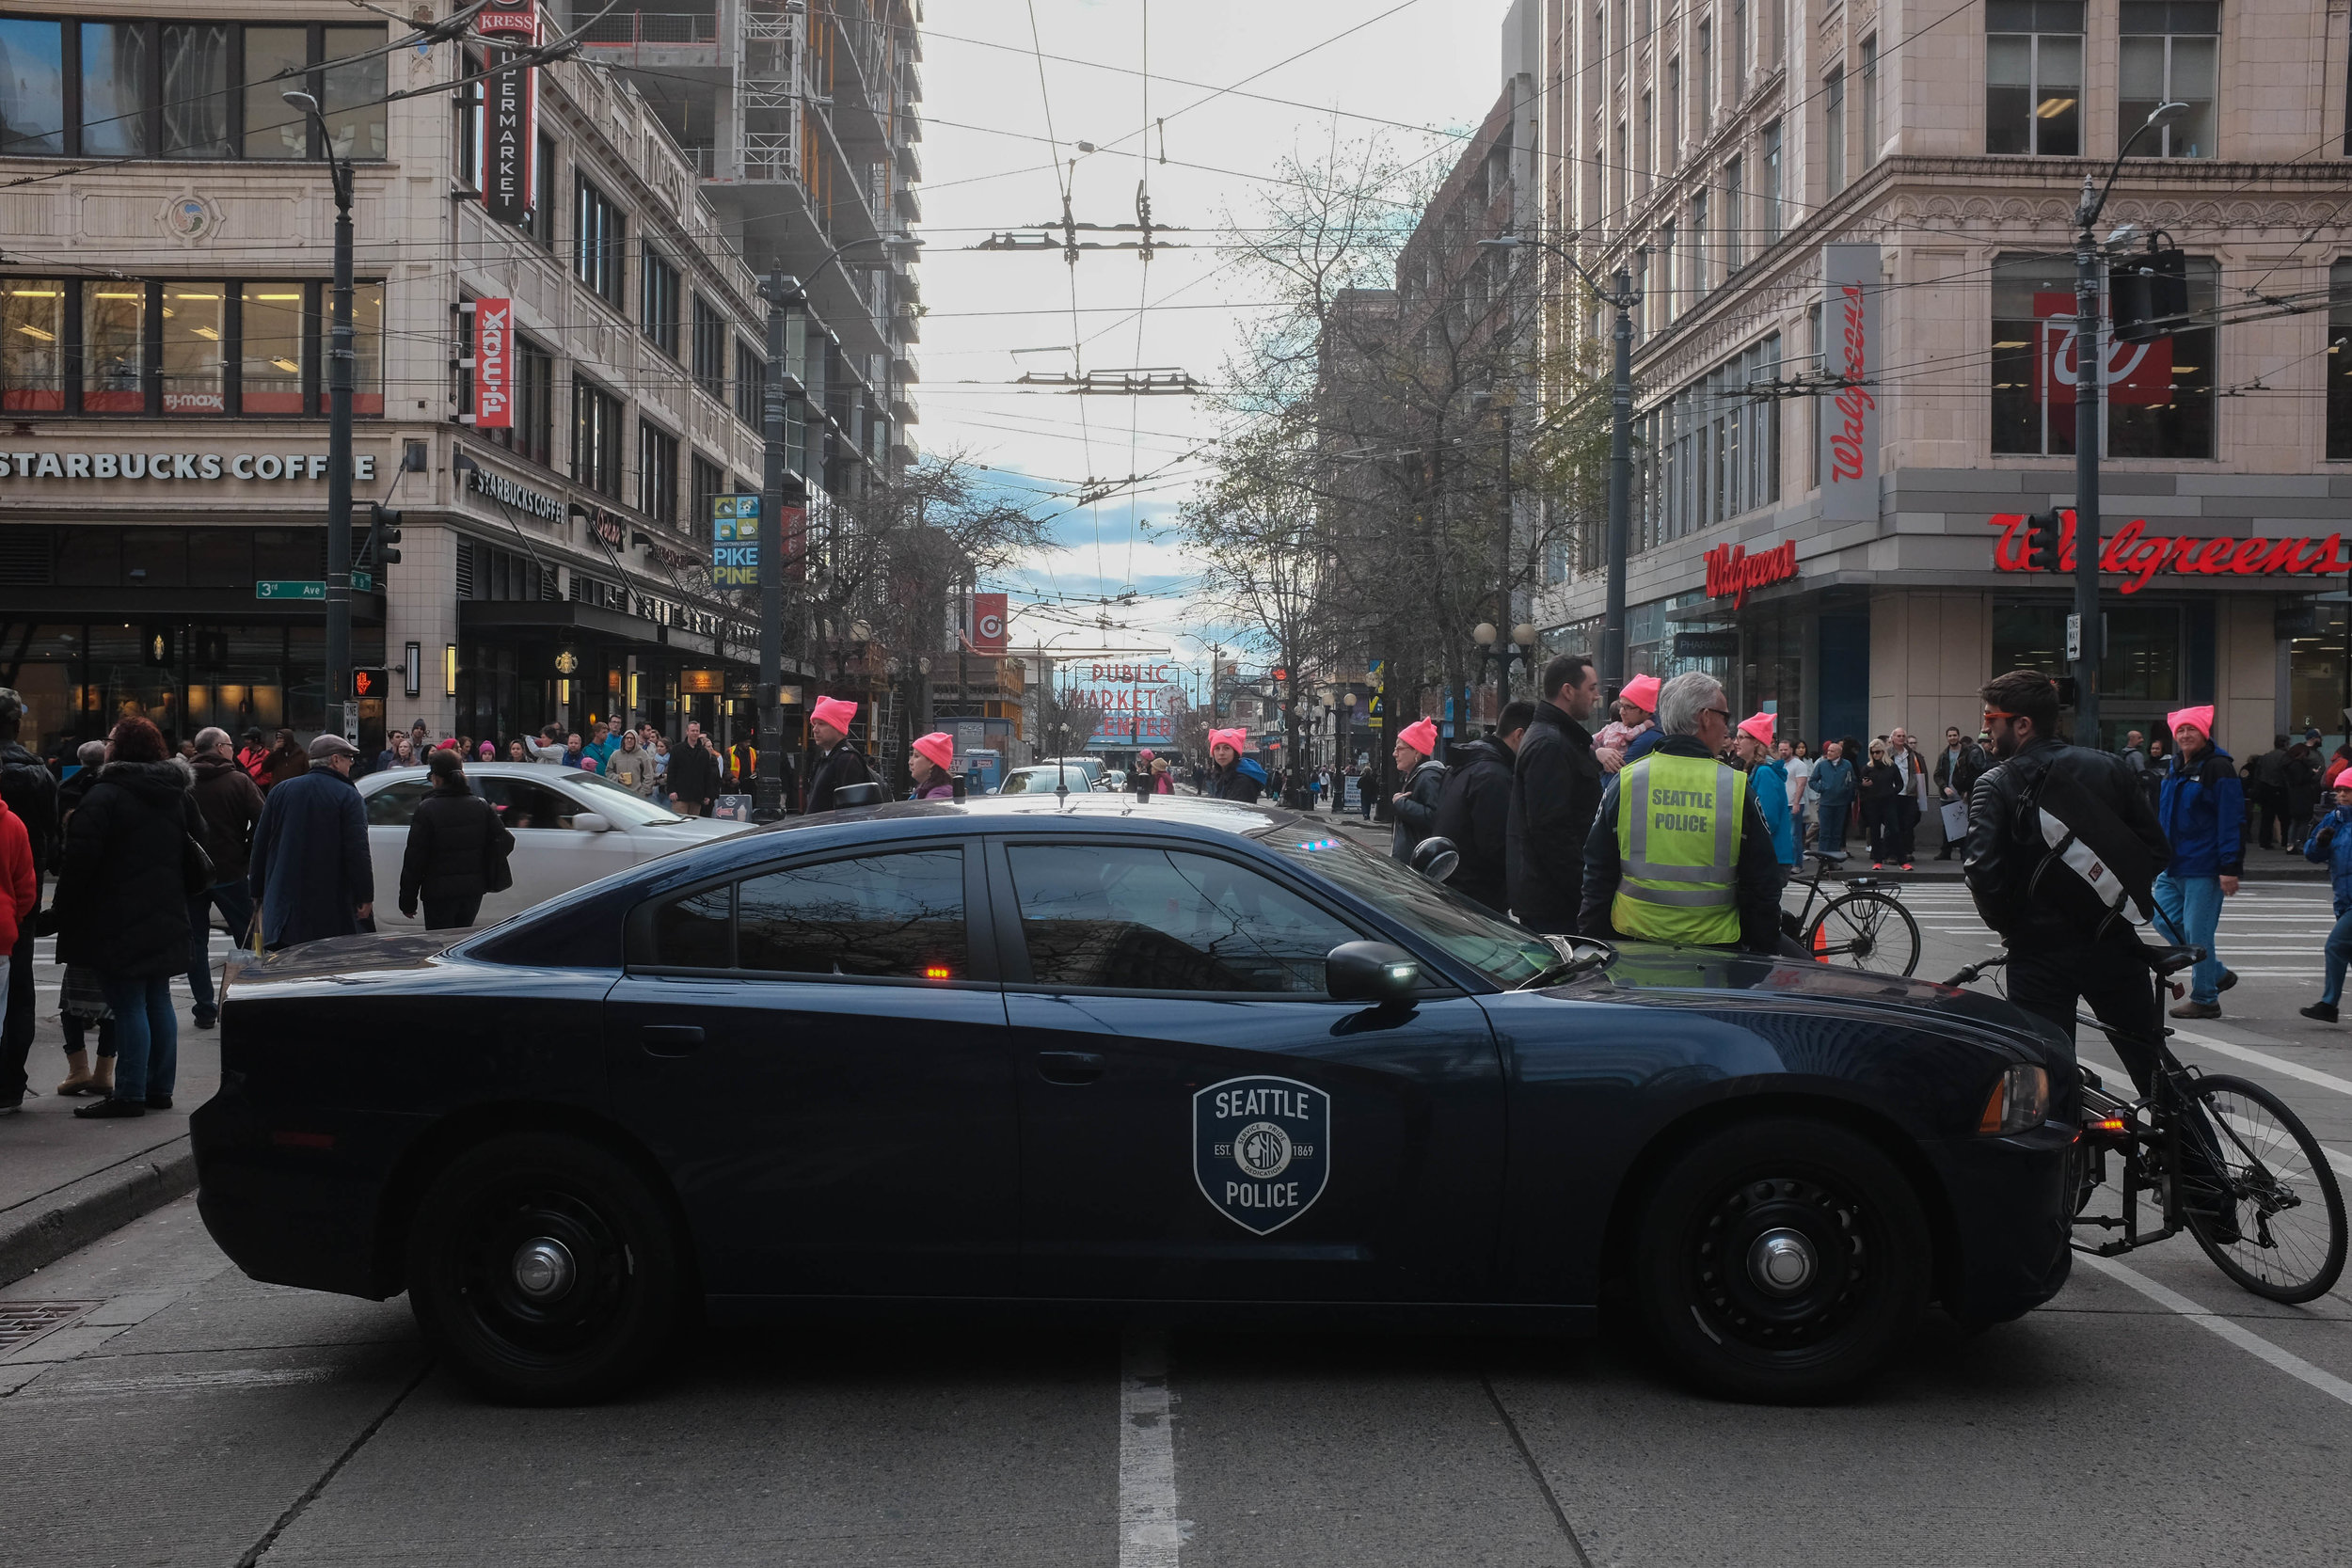 wm-police-and-pink-hats.jpg